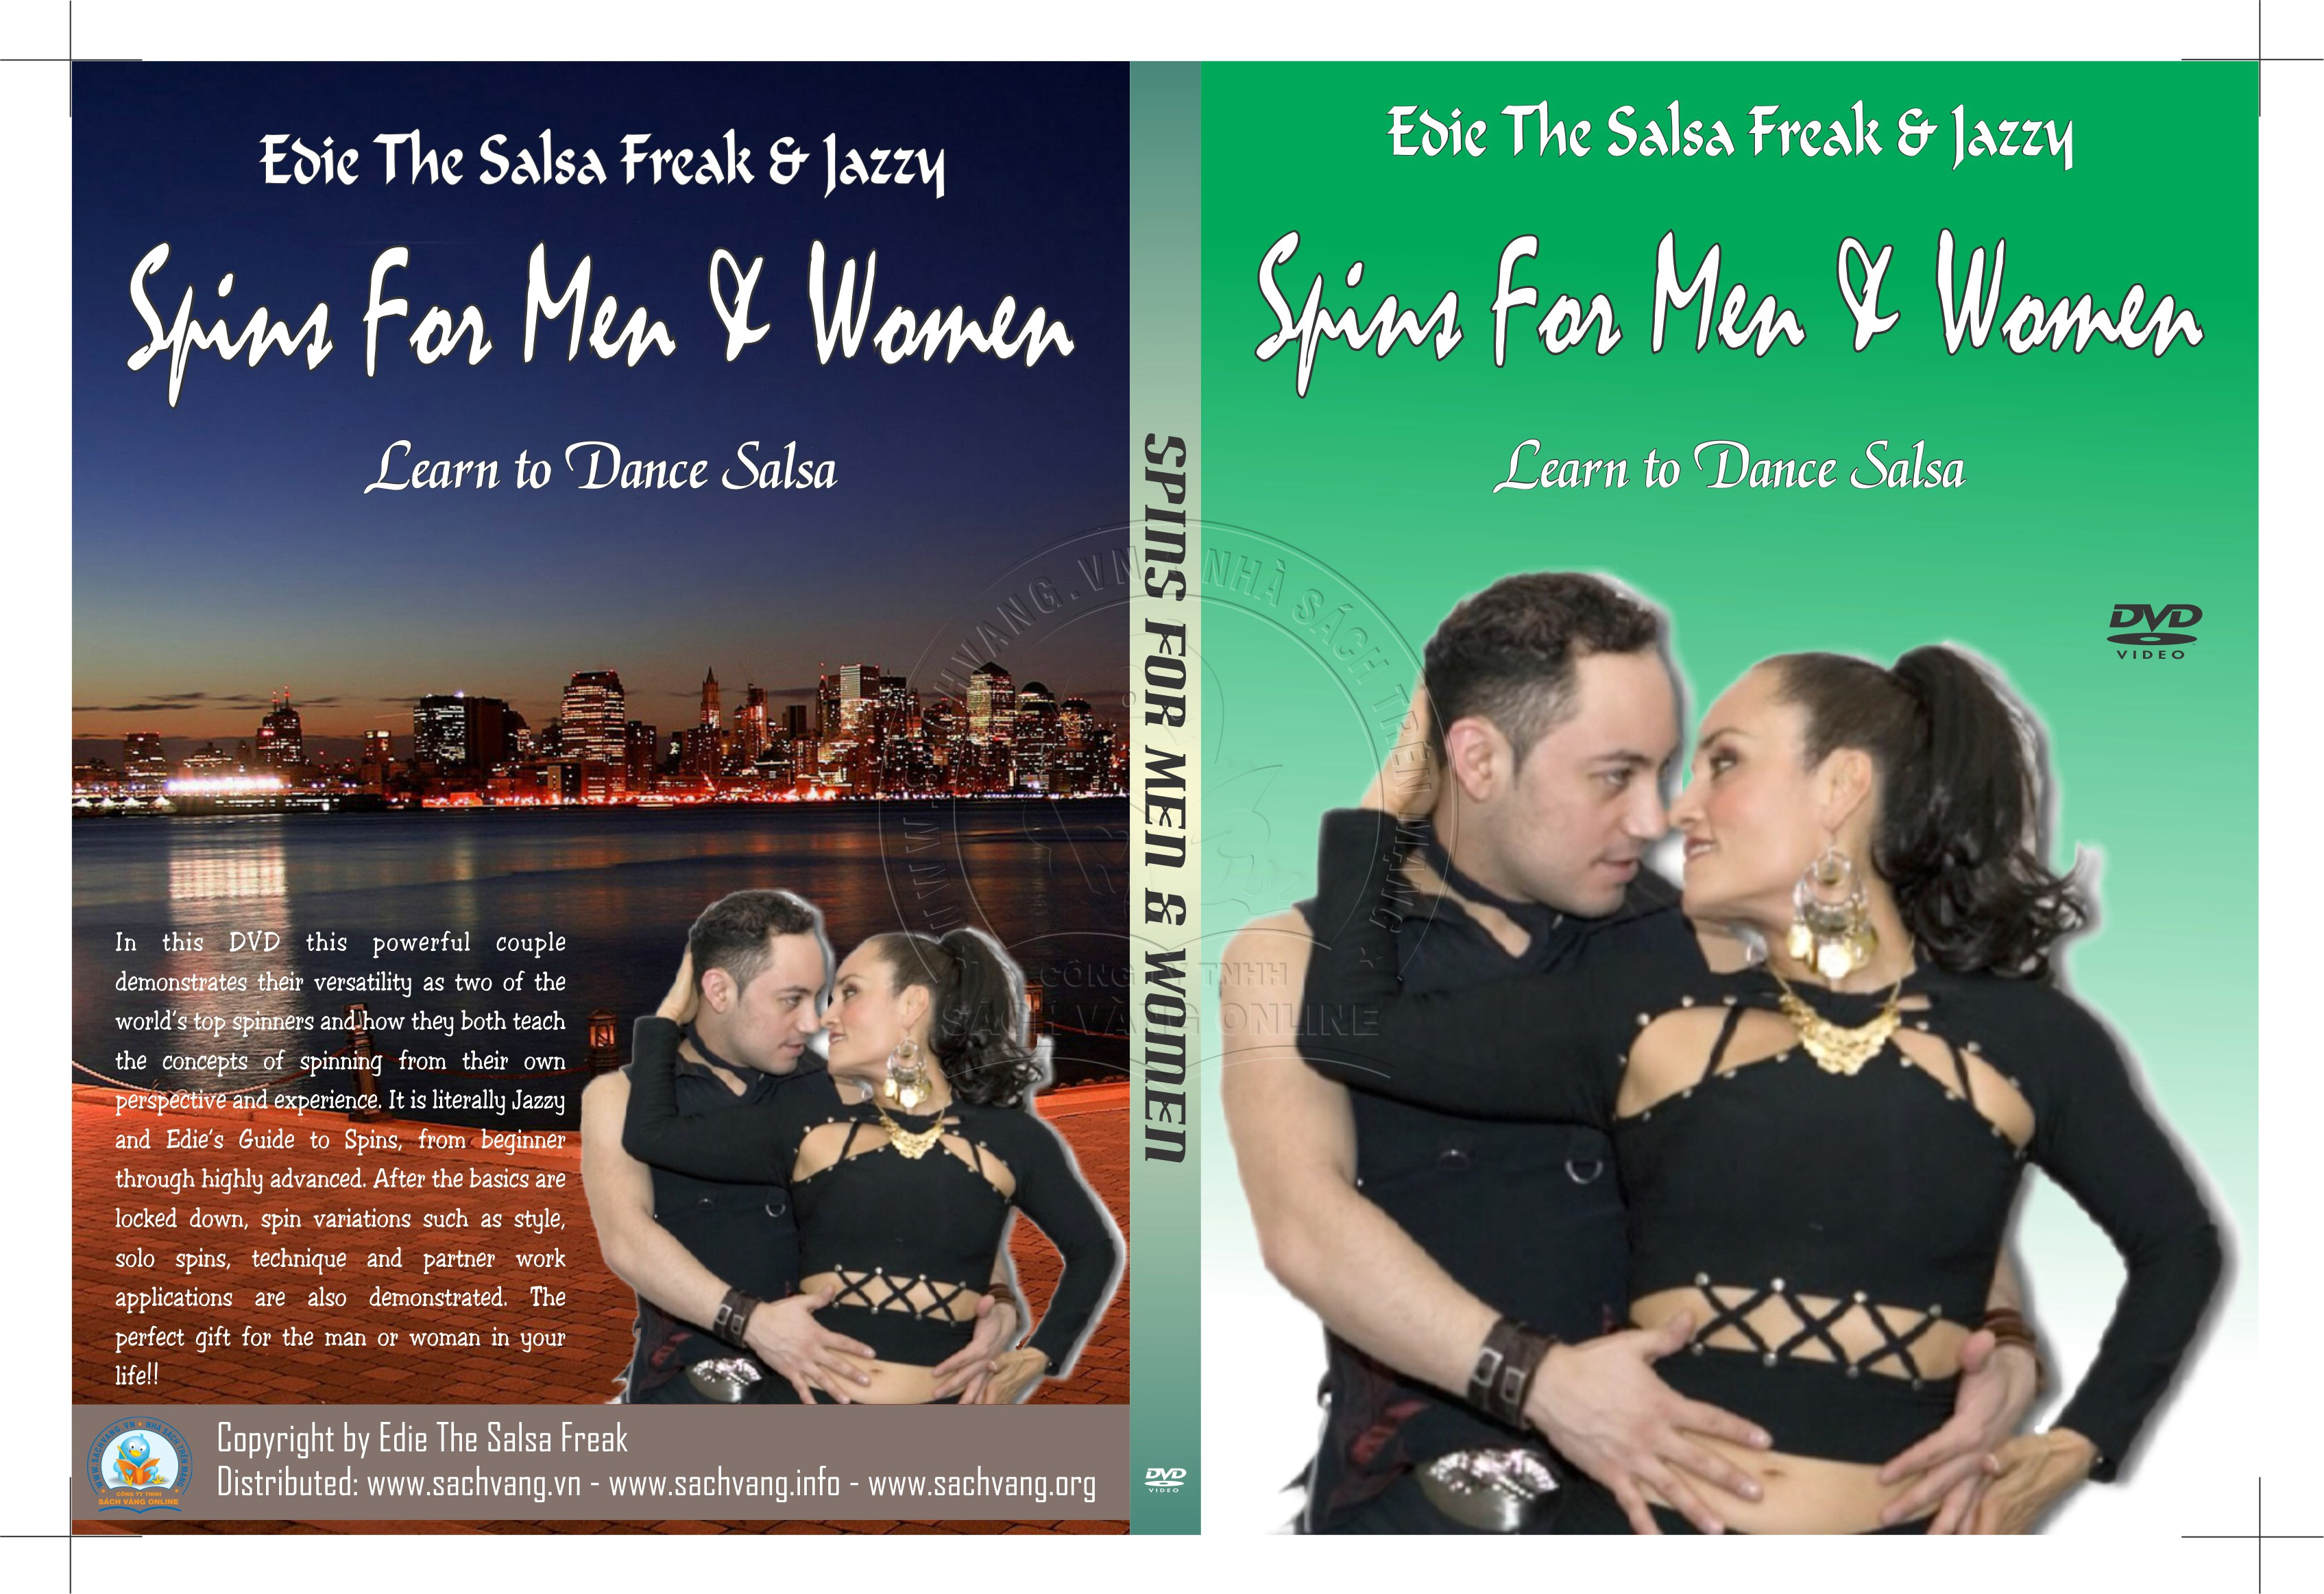 Spins For Men & Women with Edie and Jazzy cover